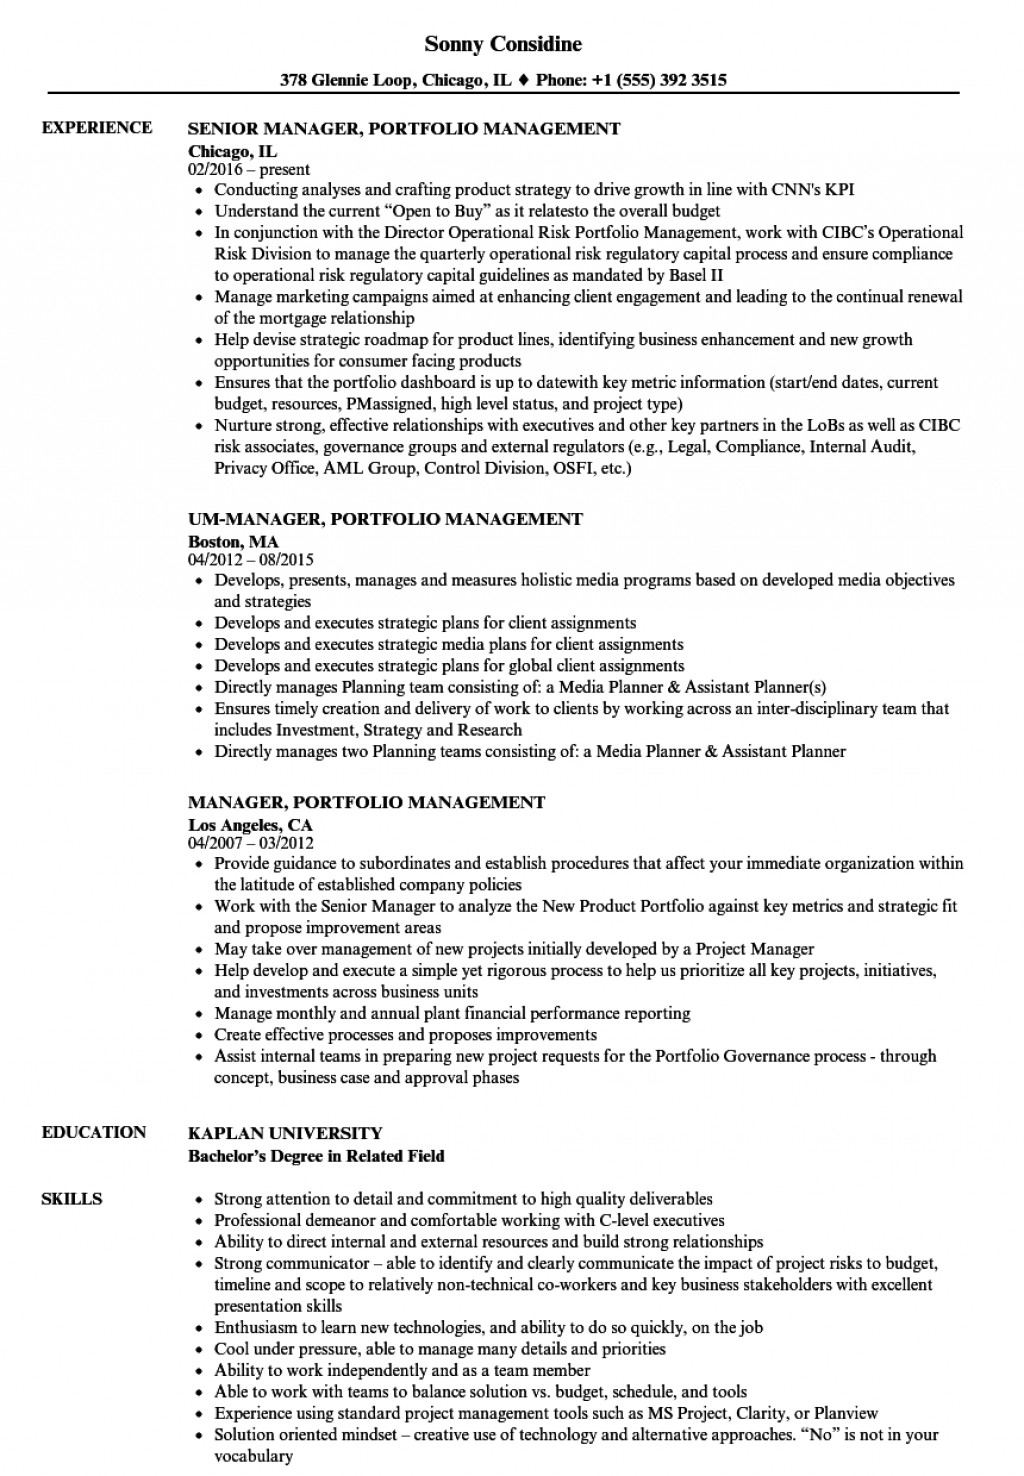 015 Why Do You Want To Teacher Essay Example Manager Portfolio Management Resume Impressive Be A Pdf Would Become Large